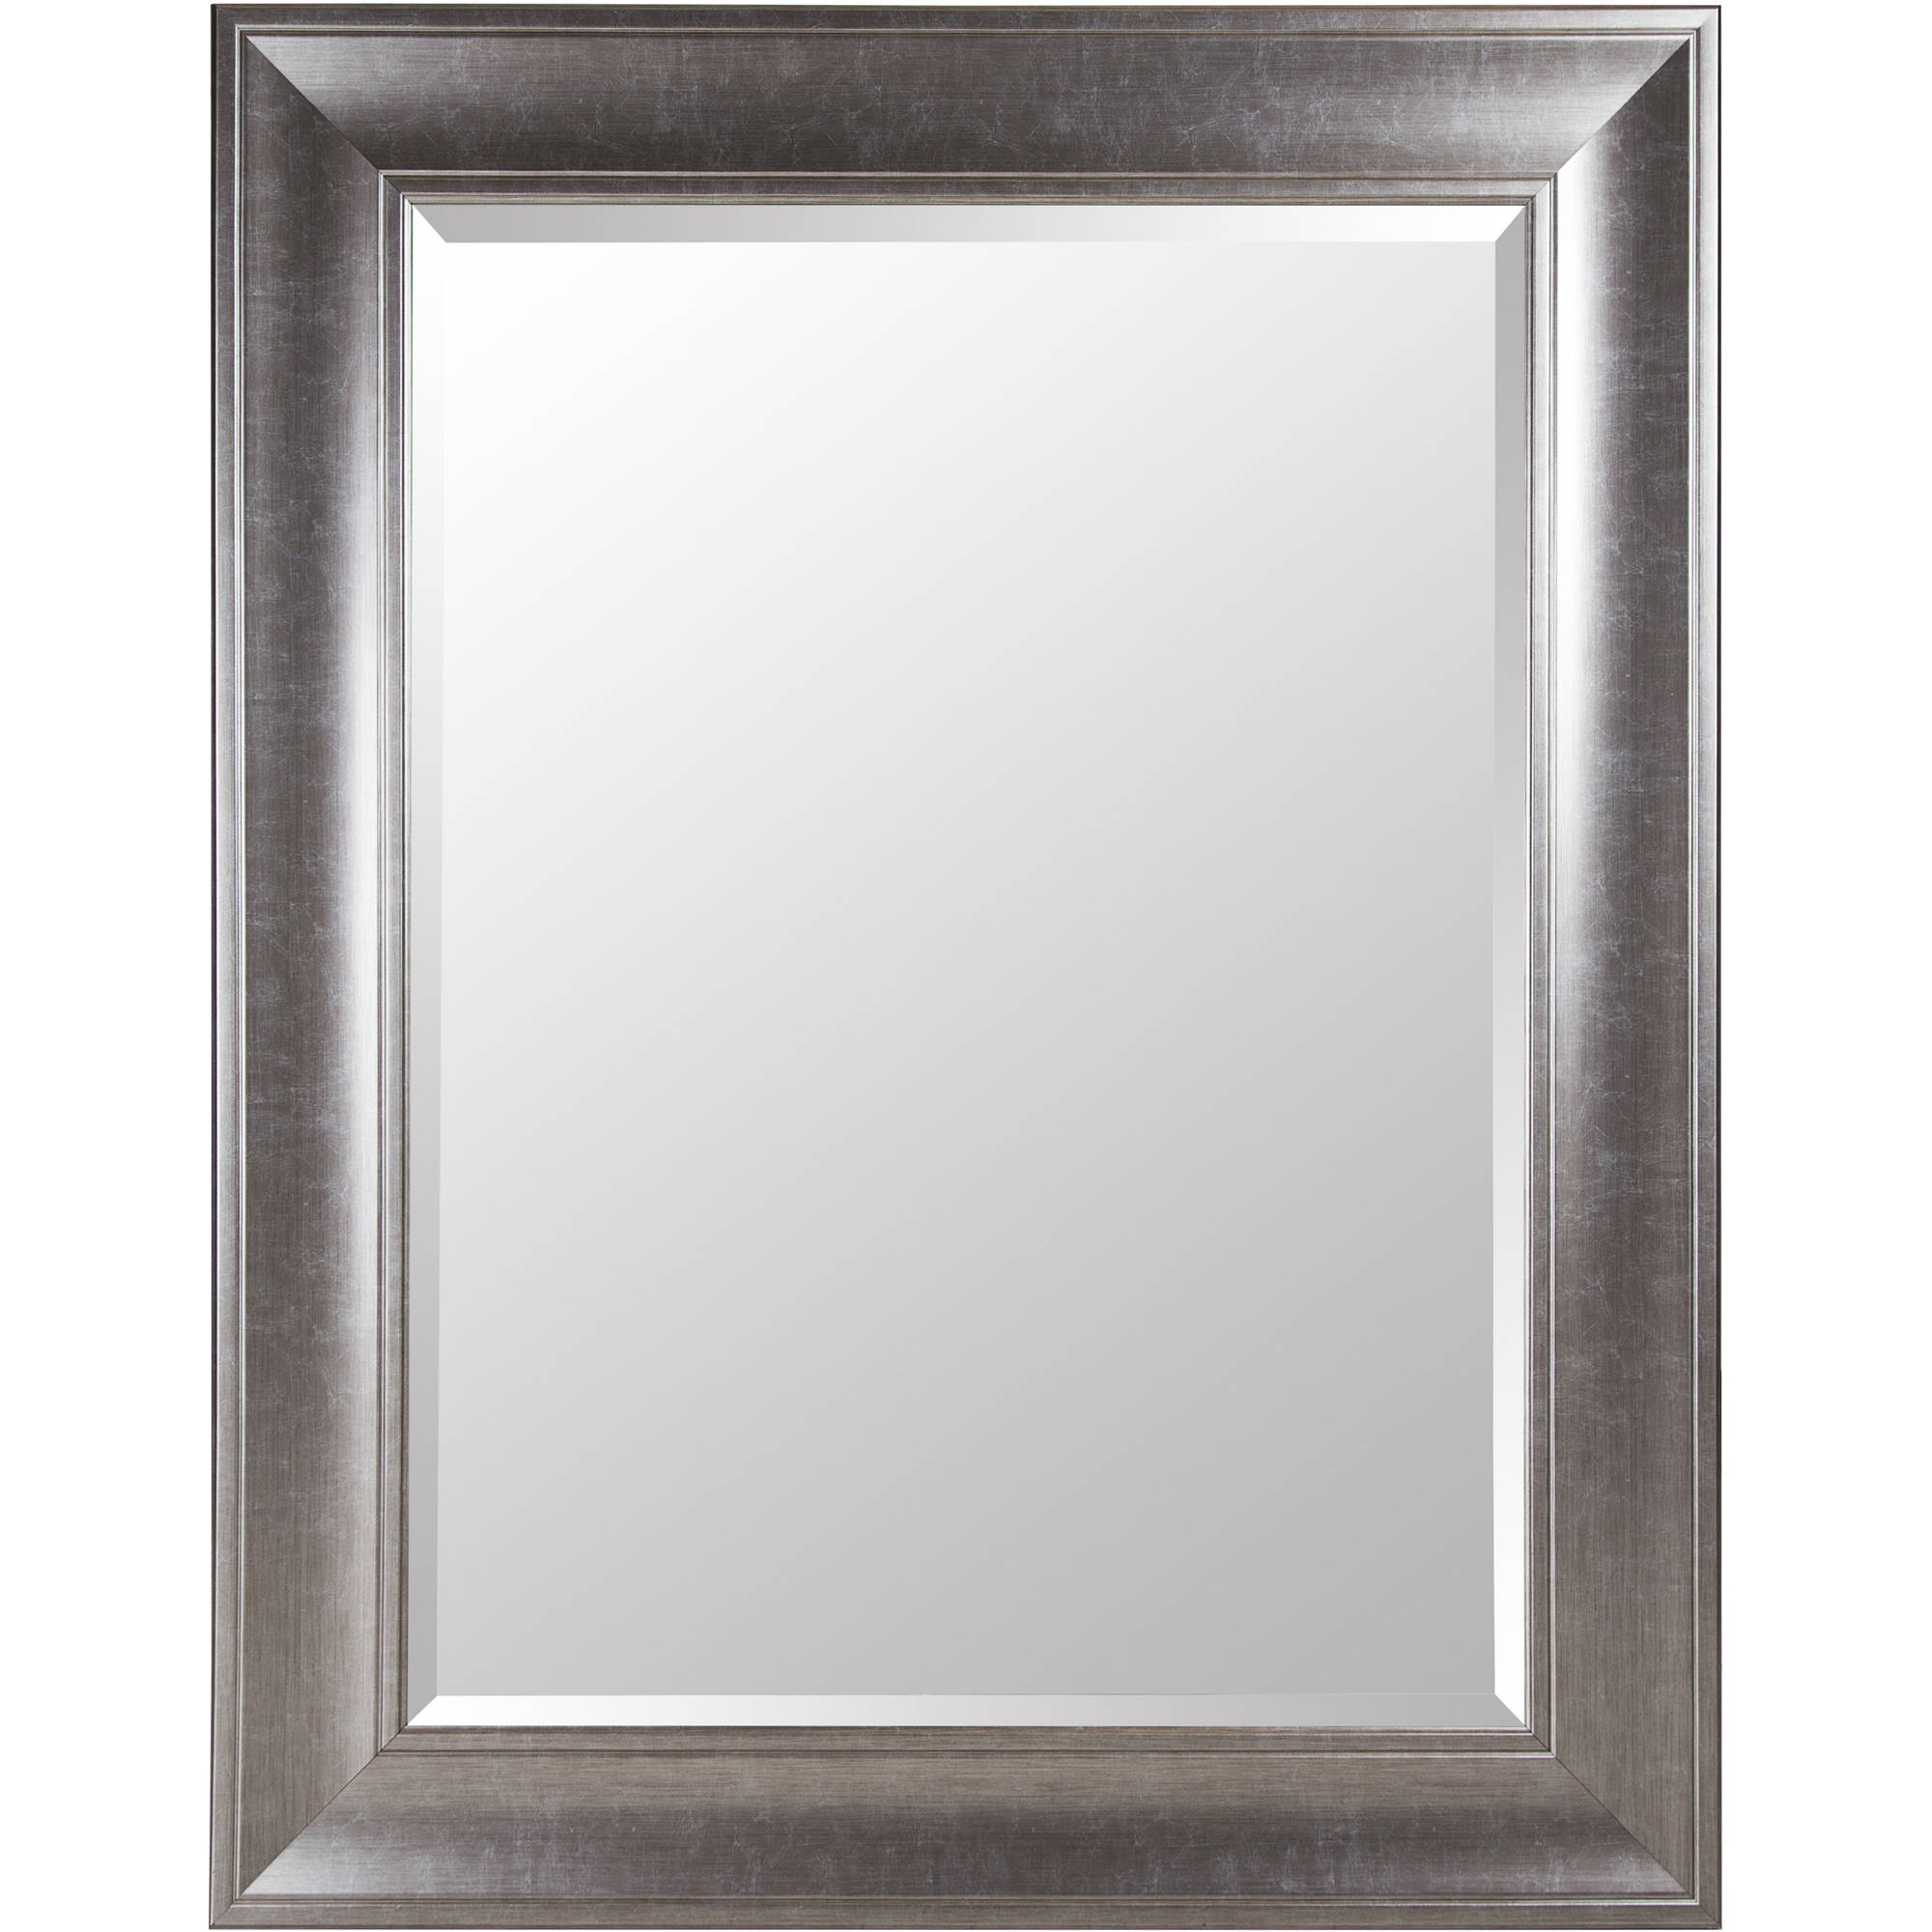 Gallery Solutions Large 39X49 Beveled Wall Mirror with Brushed Nickel Frame by Pinnacle Frames and Accents